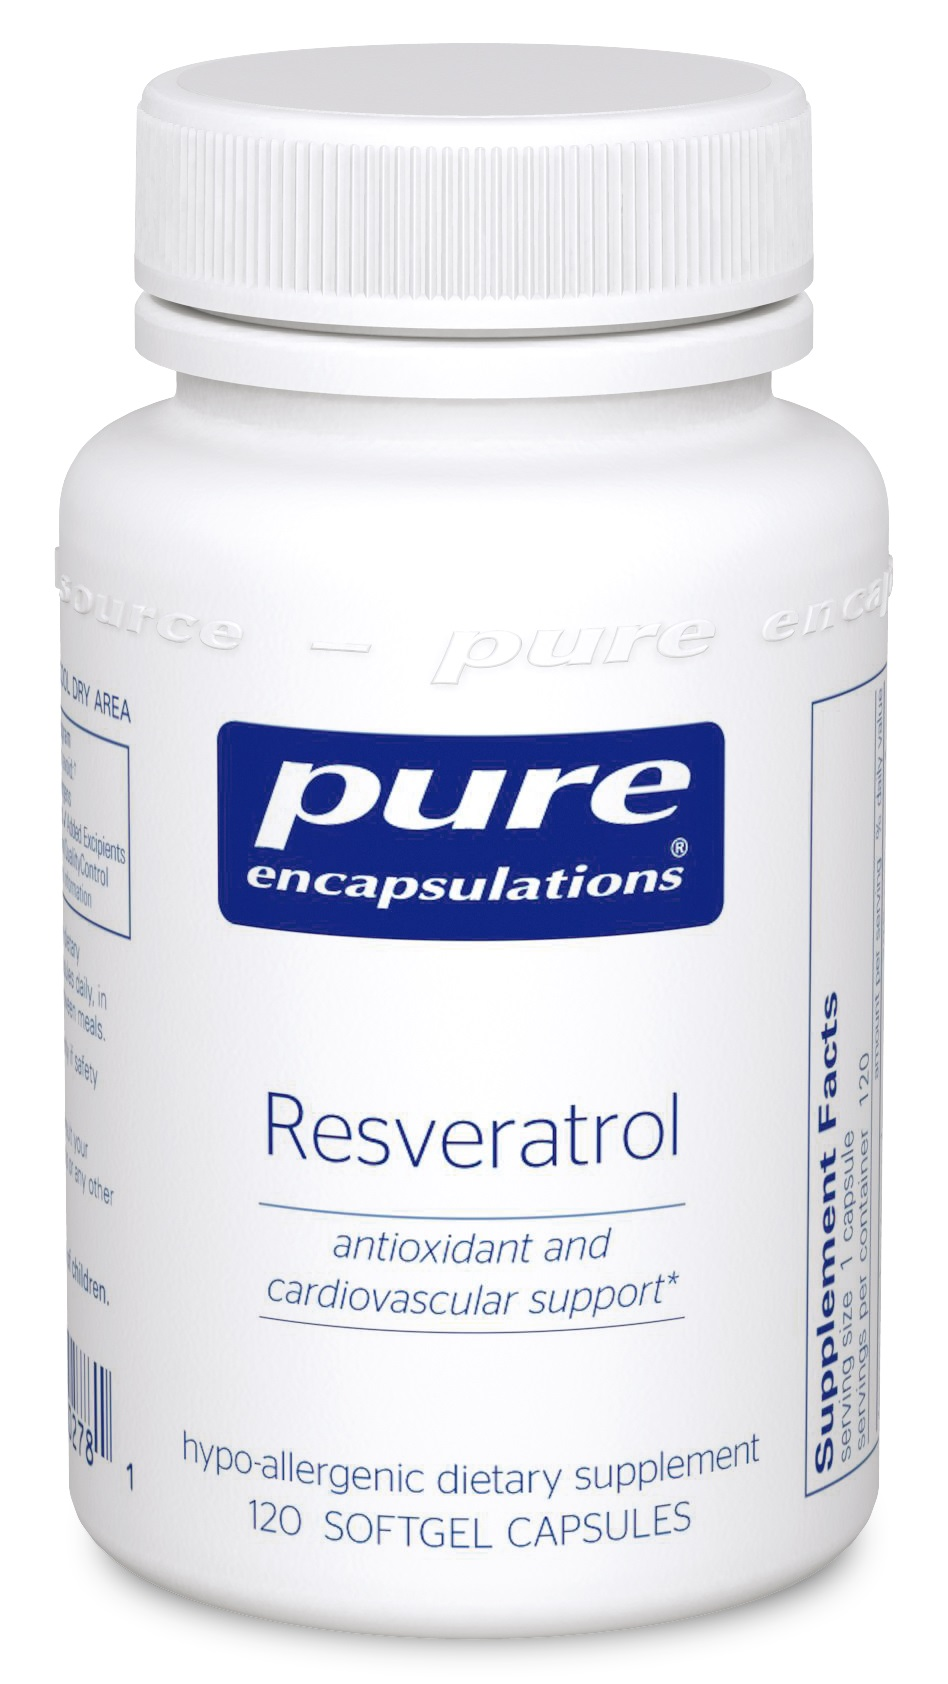 Pure Encapsulations Resveratrol